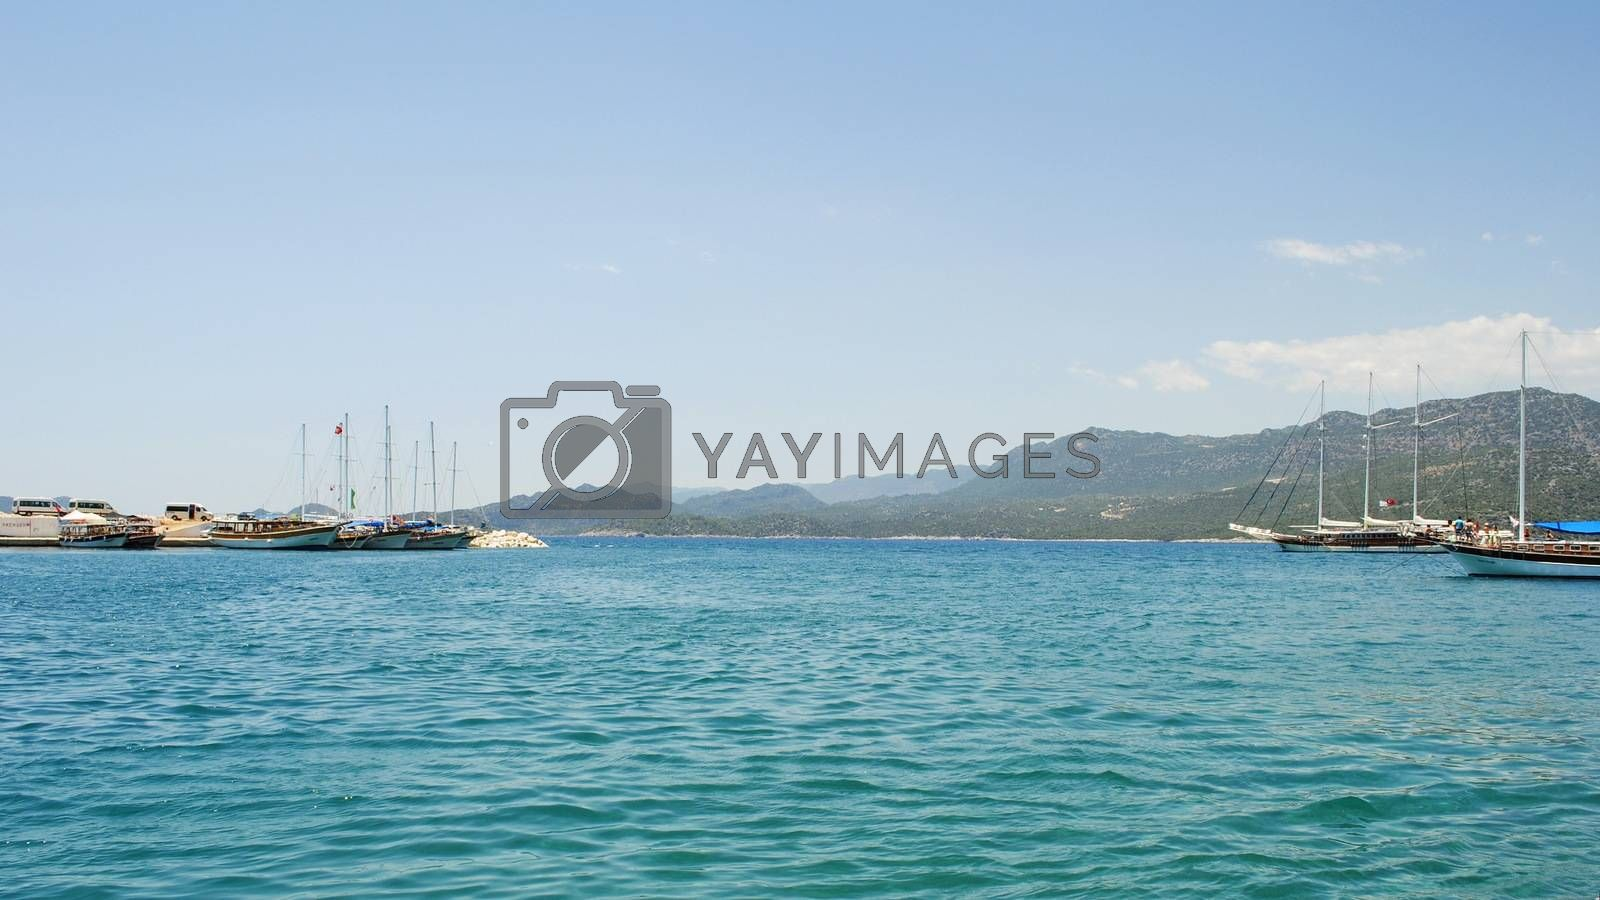 Recreational, tourist ships in the Mediterranean Sea in one of the resorts in Turkey